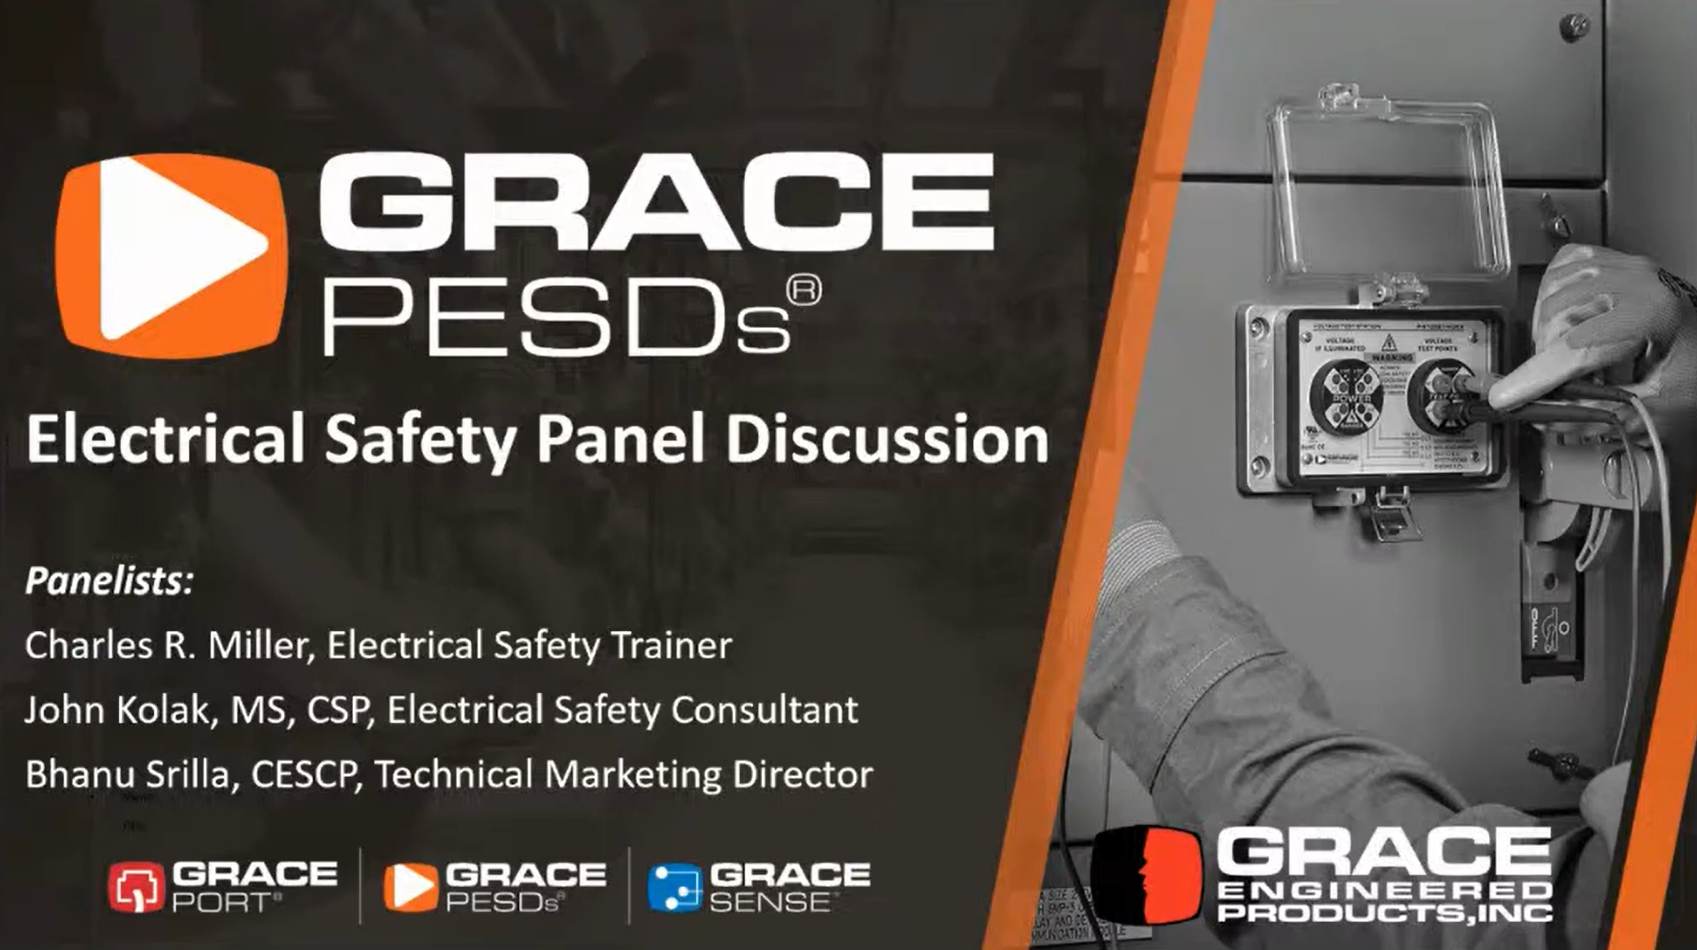 GracePESDs Electrical Safety Panel Discussion